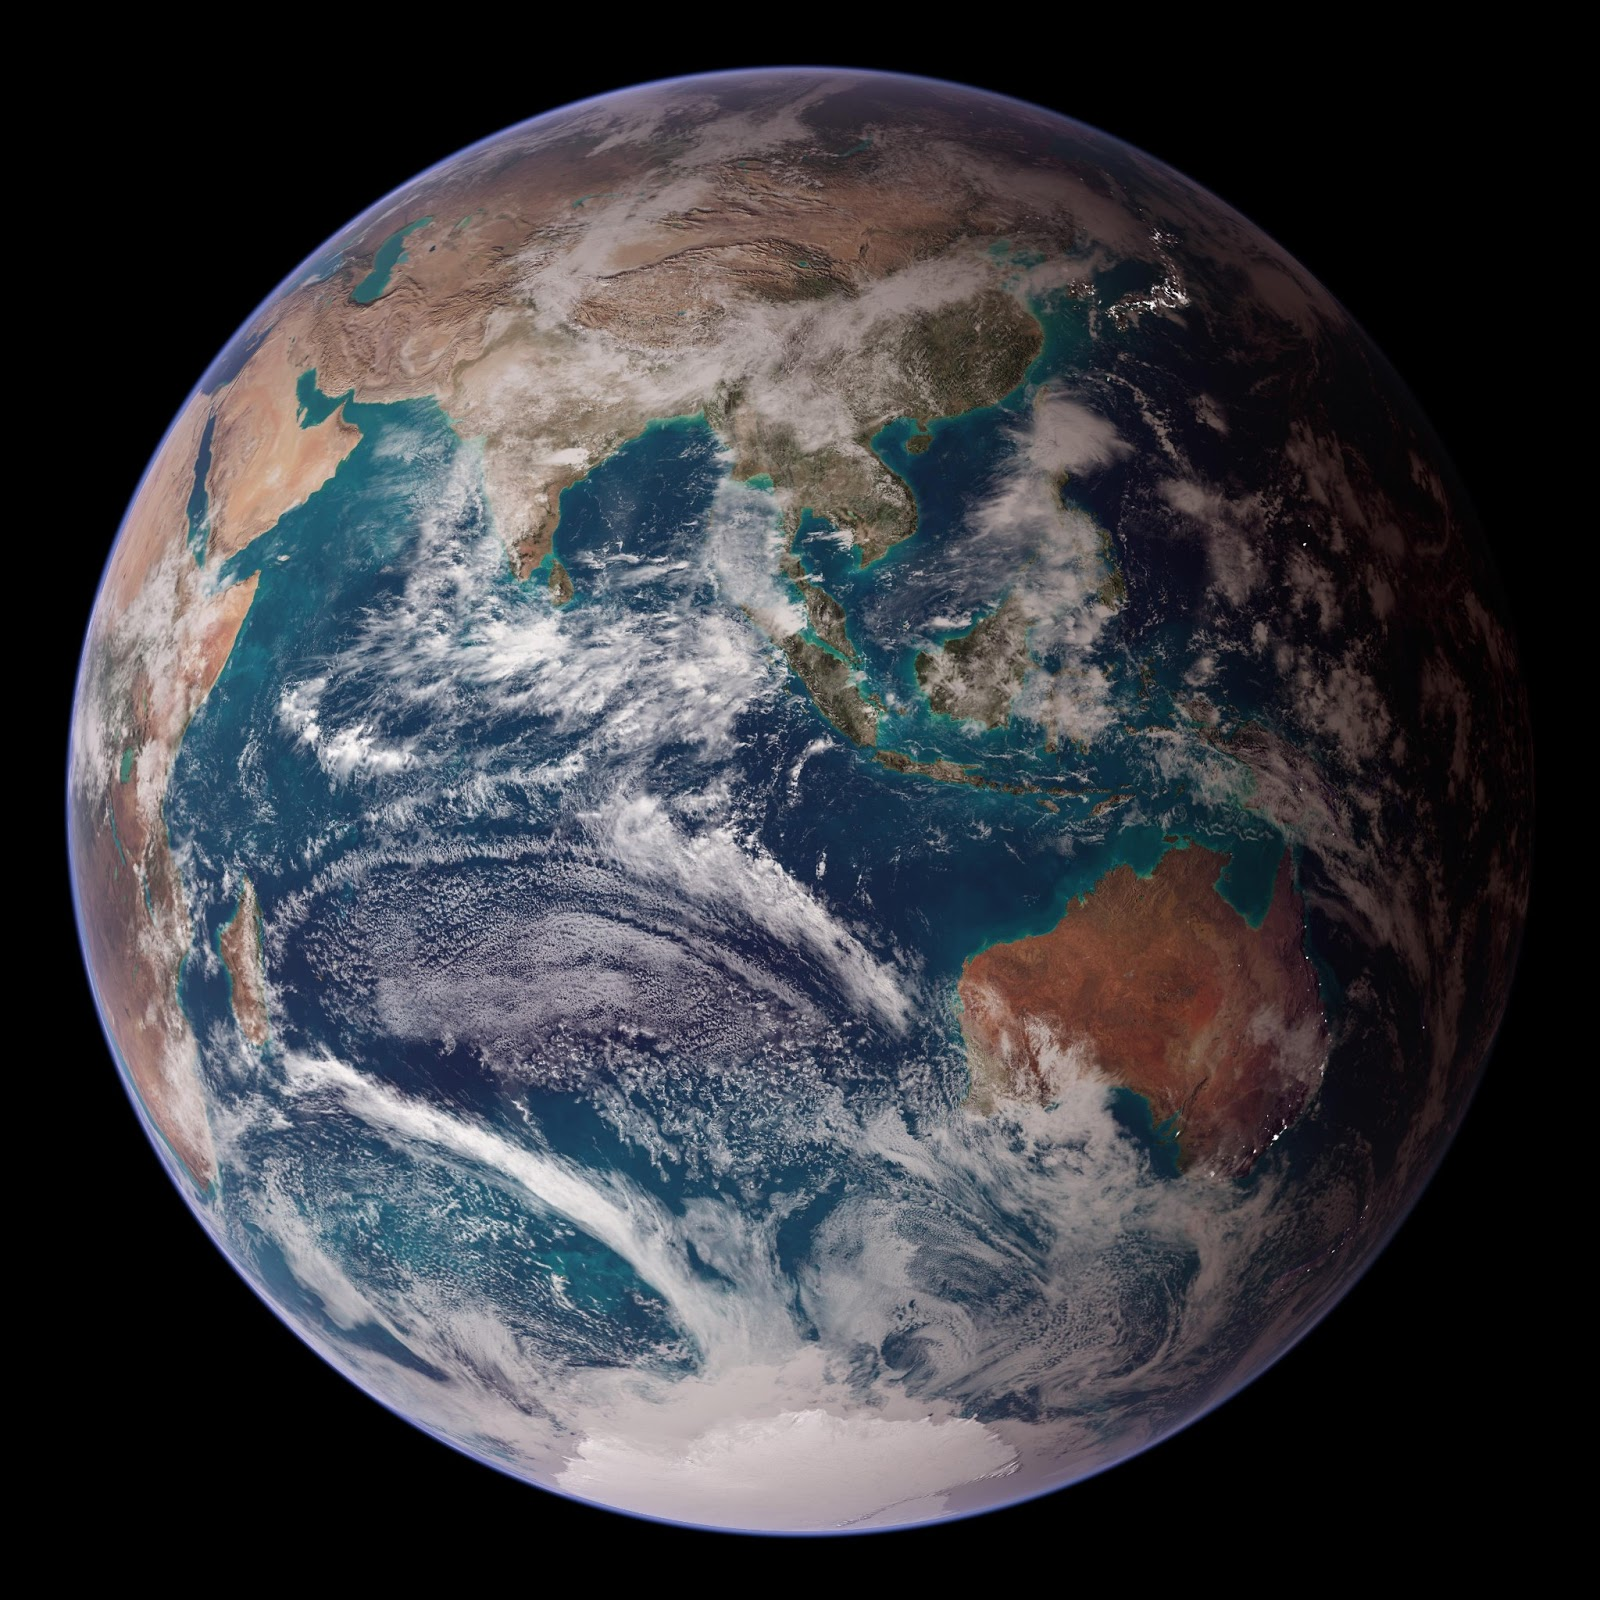 Nasa Space Pictures Of Earth The Reel Foto: ...